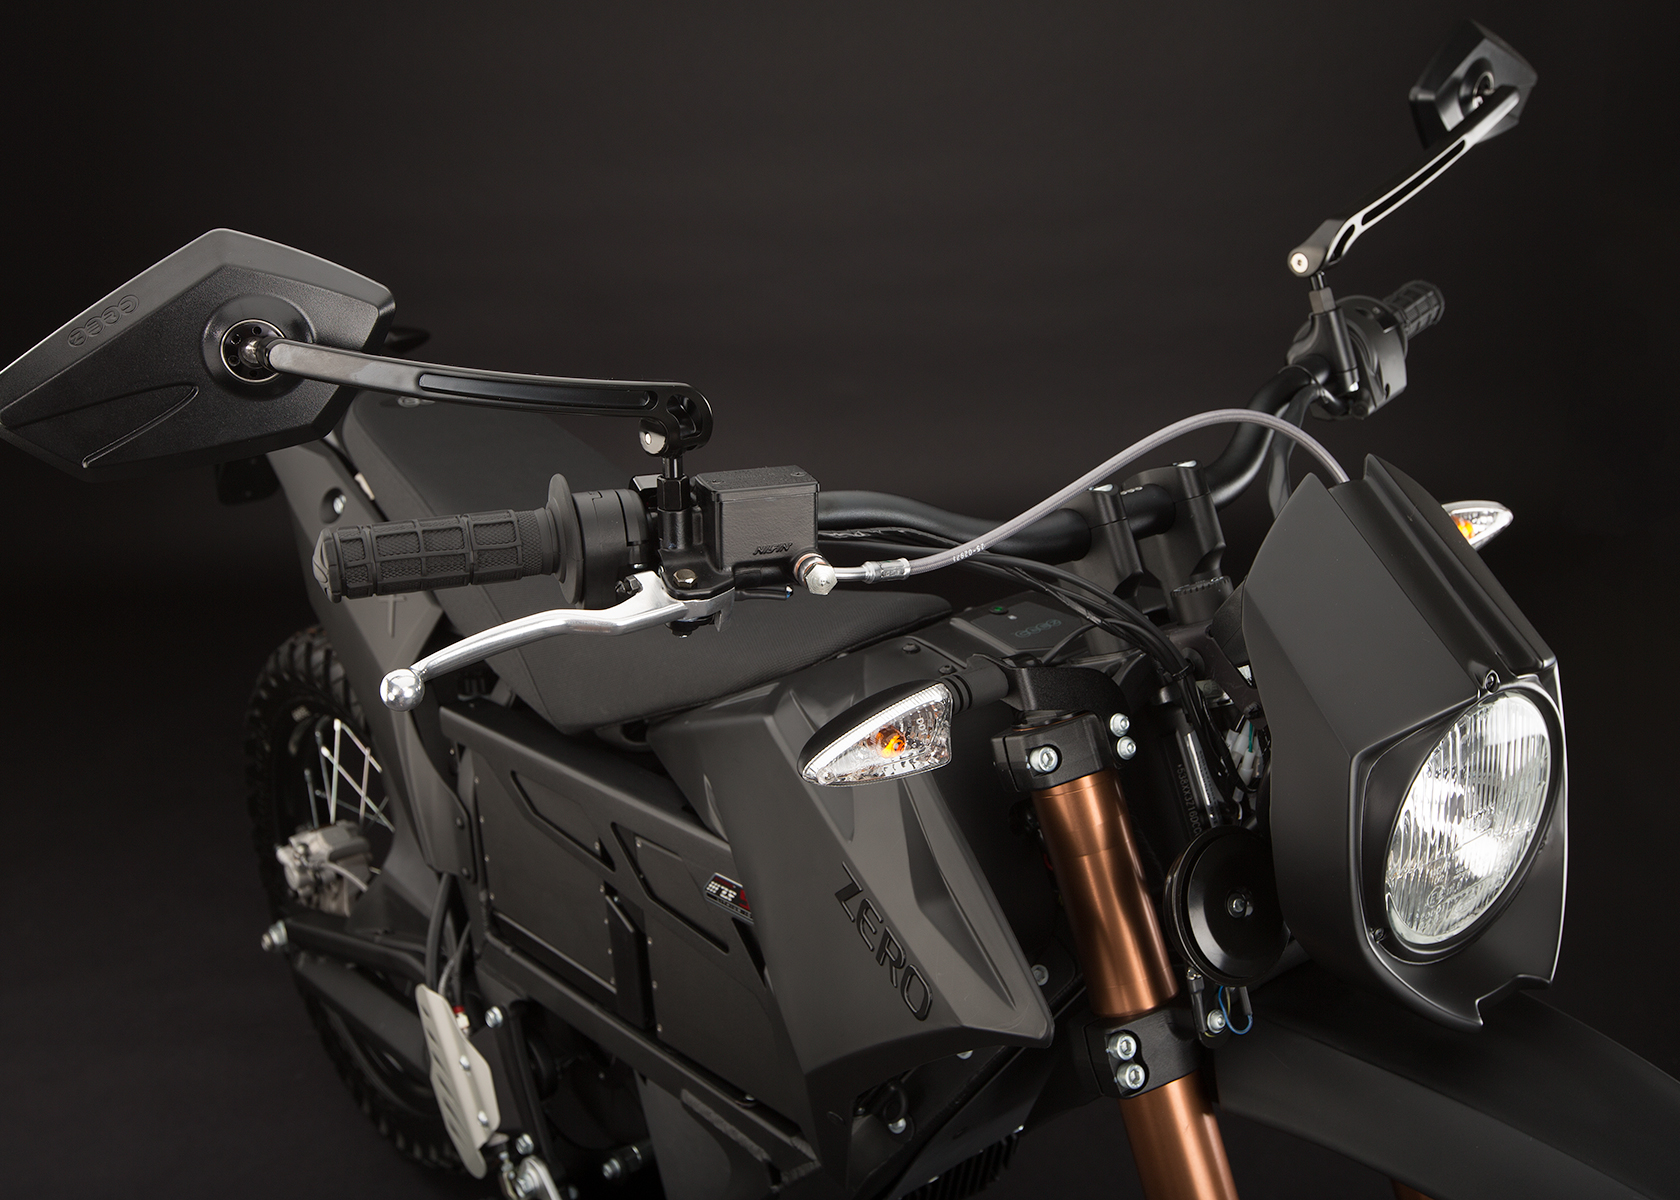 2013 Zero FX Electric Motorcycle: Street Legal